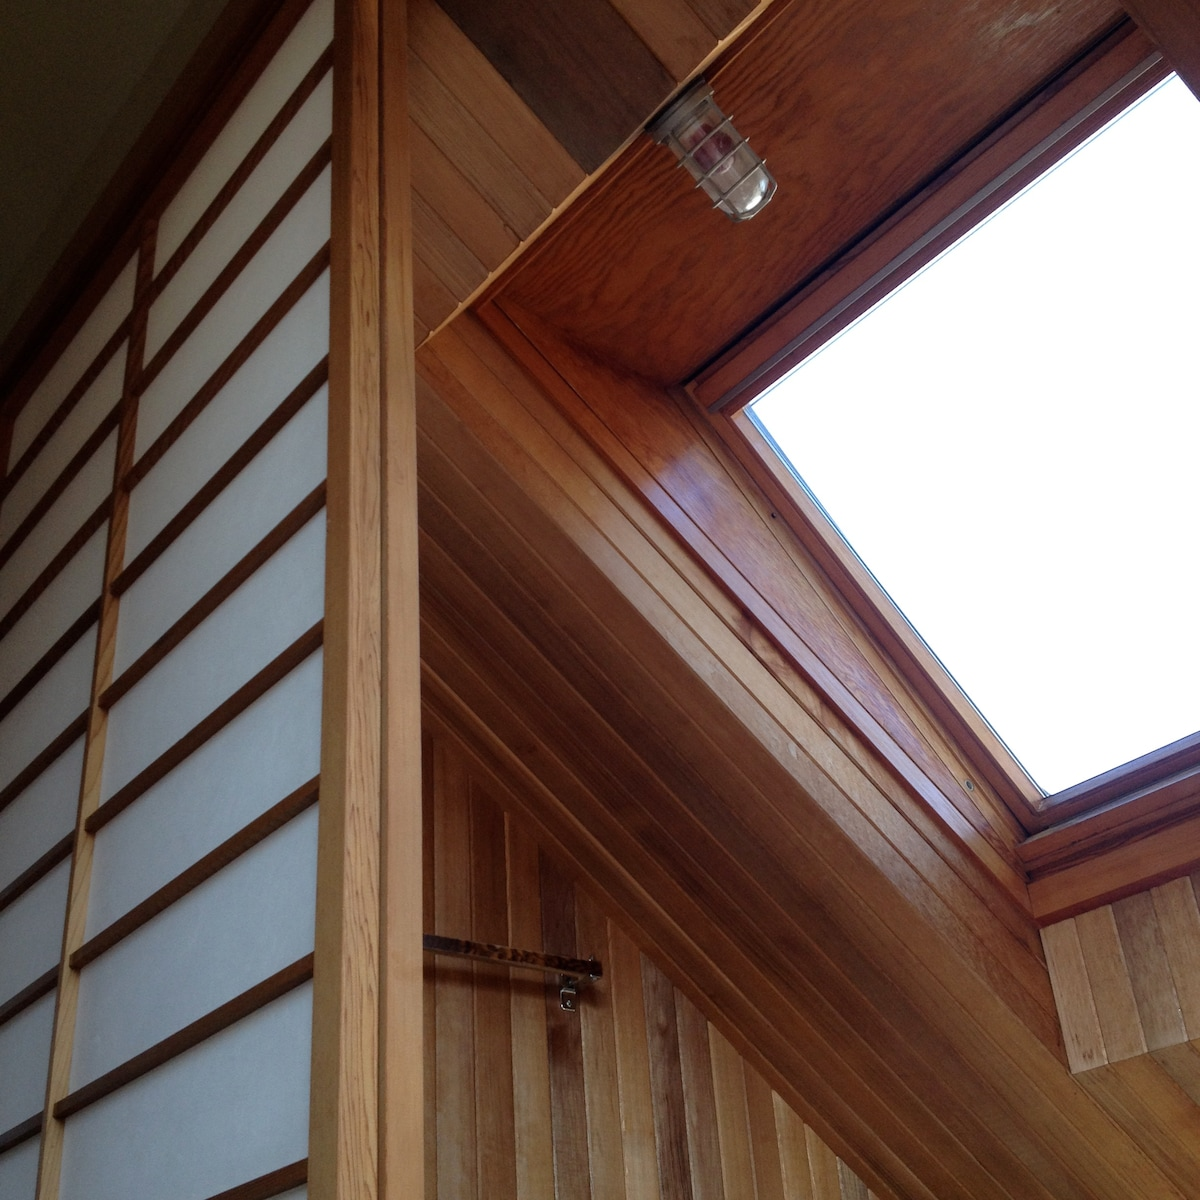 Skylight, which looks down on the jacuzzi.  Jacuzzi Room is made using Brazilian slate, radiant heat and wood paneling.